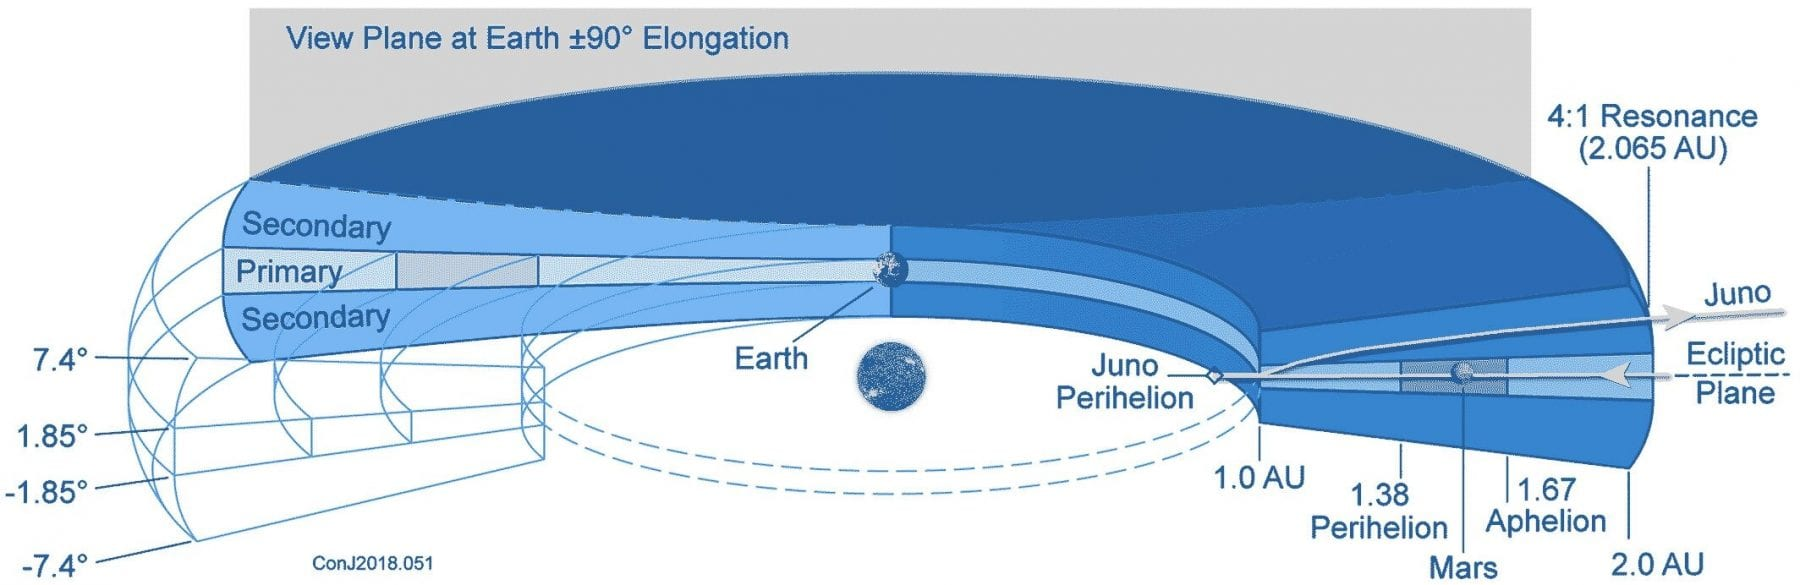 Modeled distribution of interplanetary dust according to Juno data. Credit: John Leif Jørgensen et al. / Journal of Geophysical Research: Planets, 2021